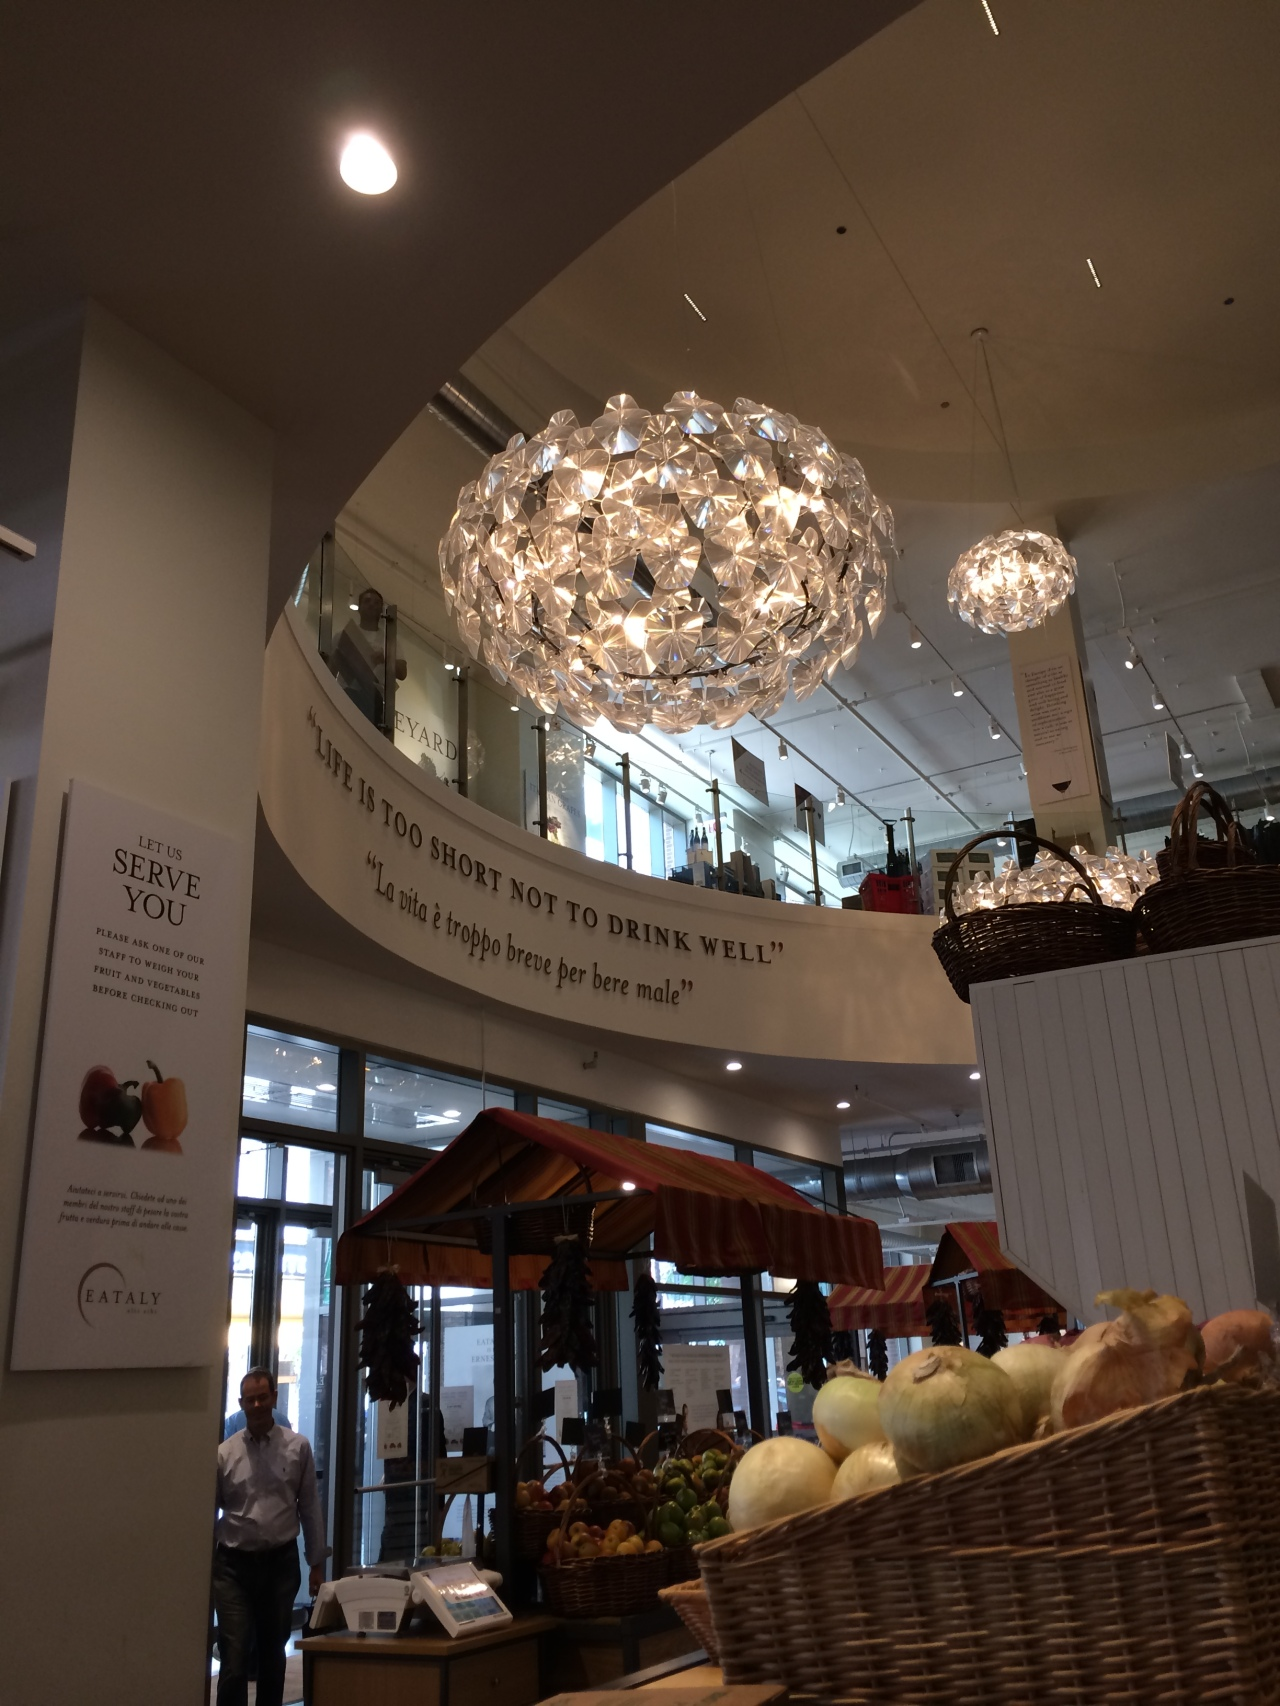 Eataly Chicago housing many of my favorite temptations under one lovely roof.